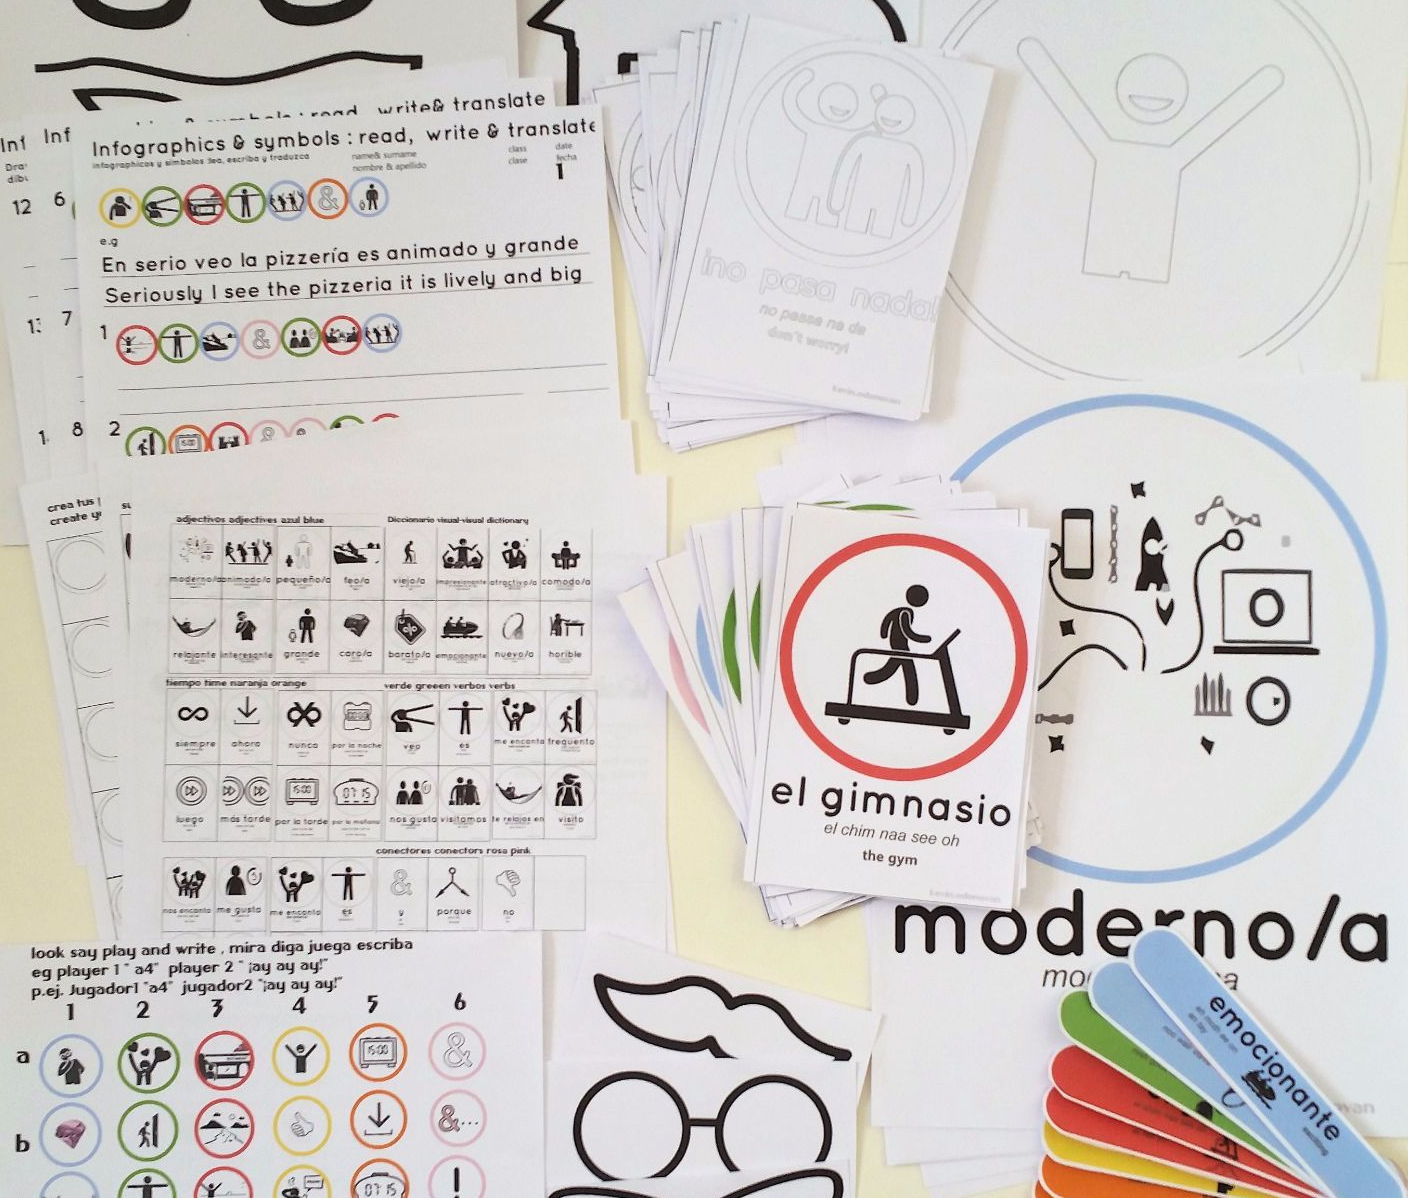 KS2/3/4 Spanish pack on Mi cuidad nforgraphics